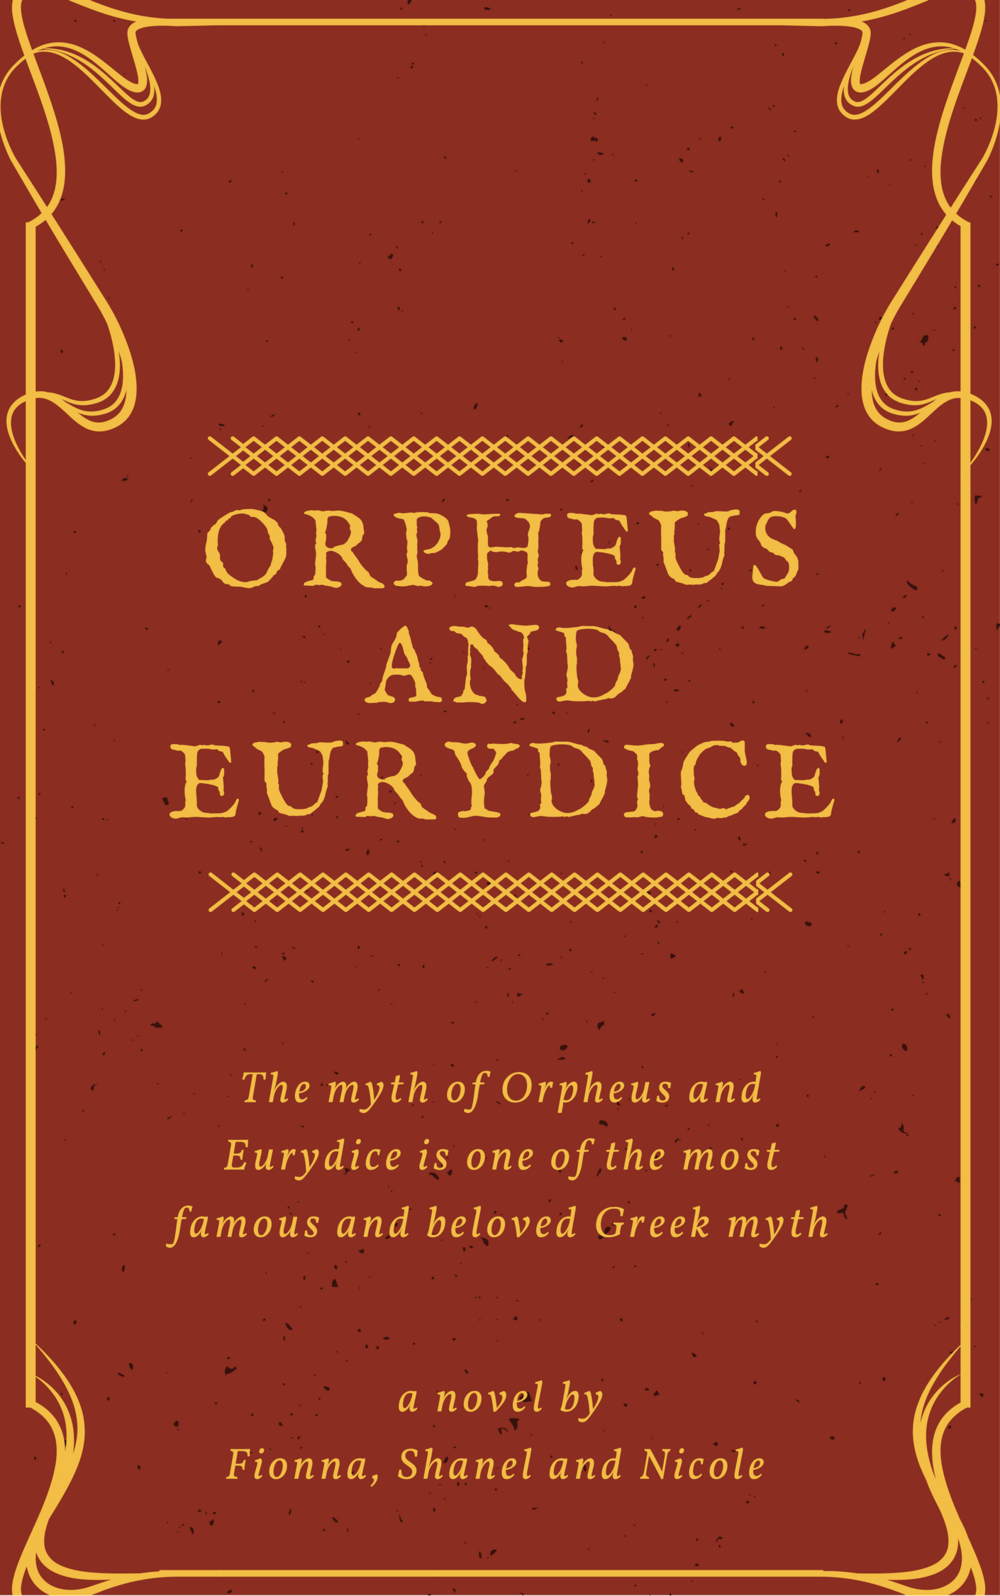 Orpheus and Eurydice cover2.png